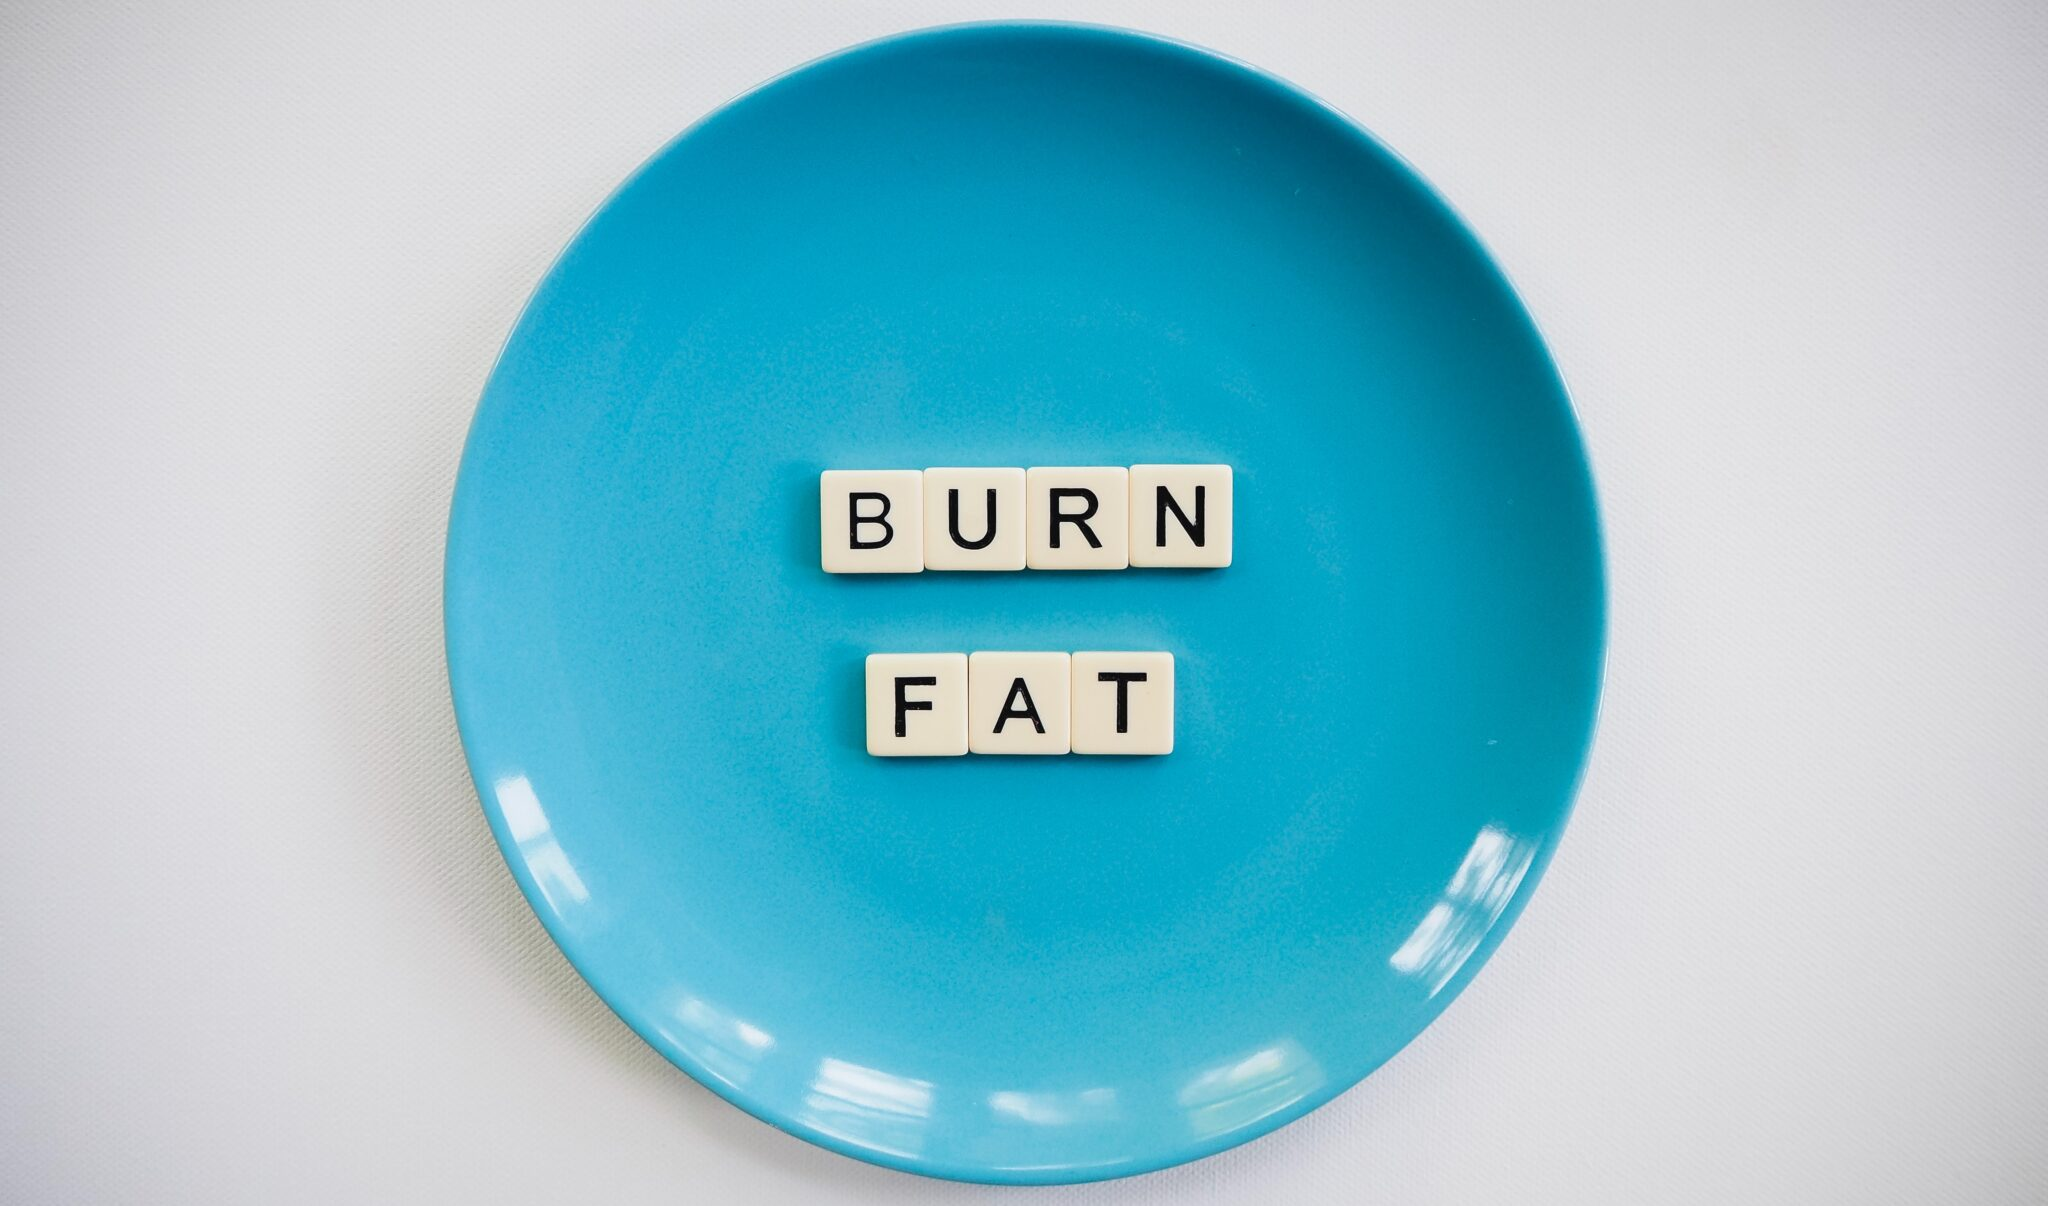 photo of a burn fat text on round blue plate 2383009